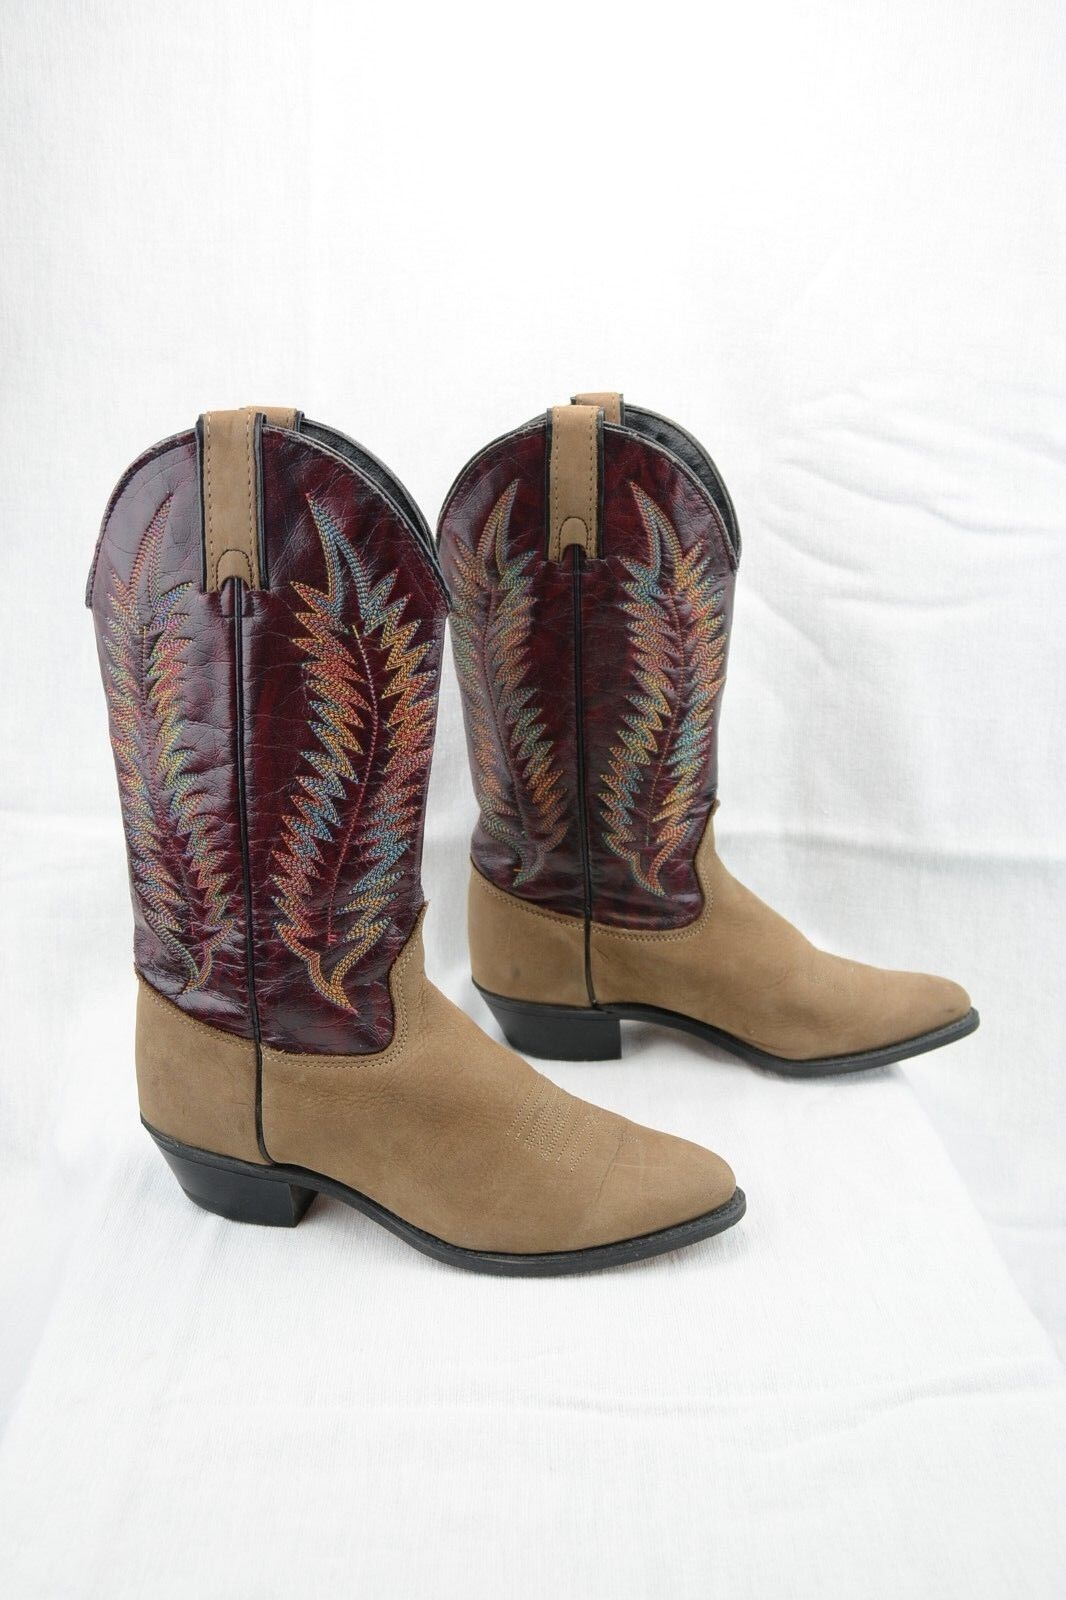 Wrangler Vintage Womens 6.5M Western Cowboy Boots Tan Burgundy Leather Suede A14